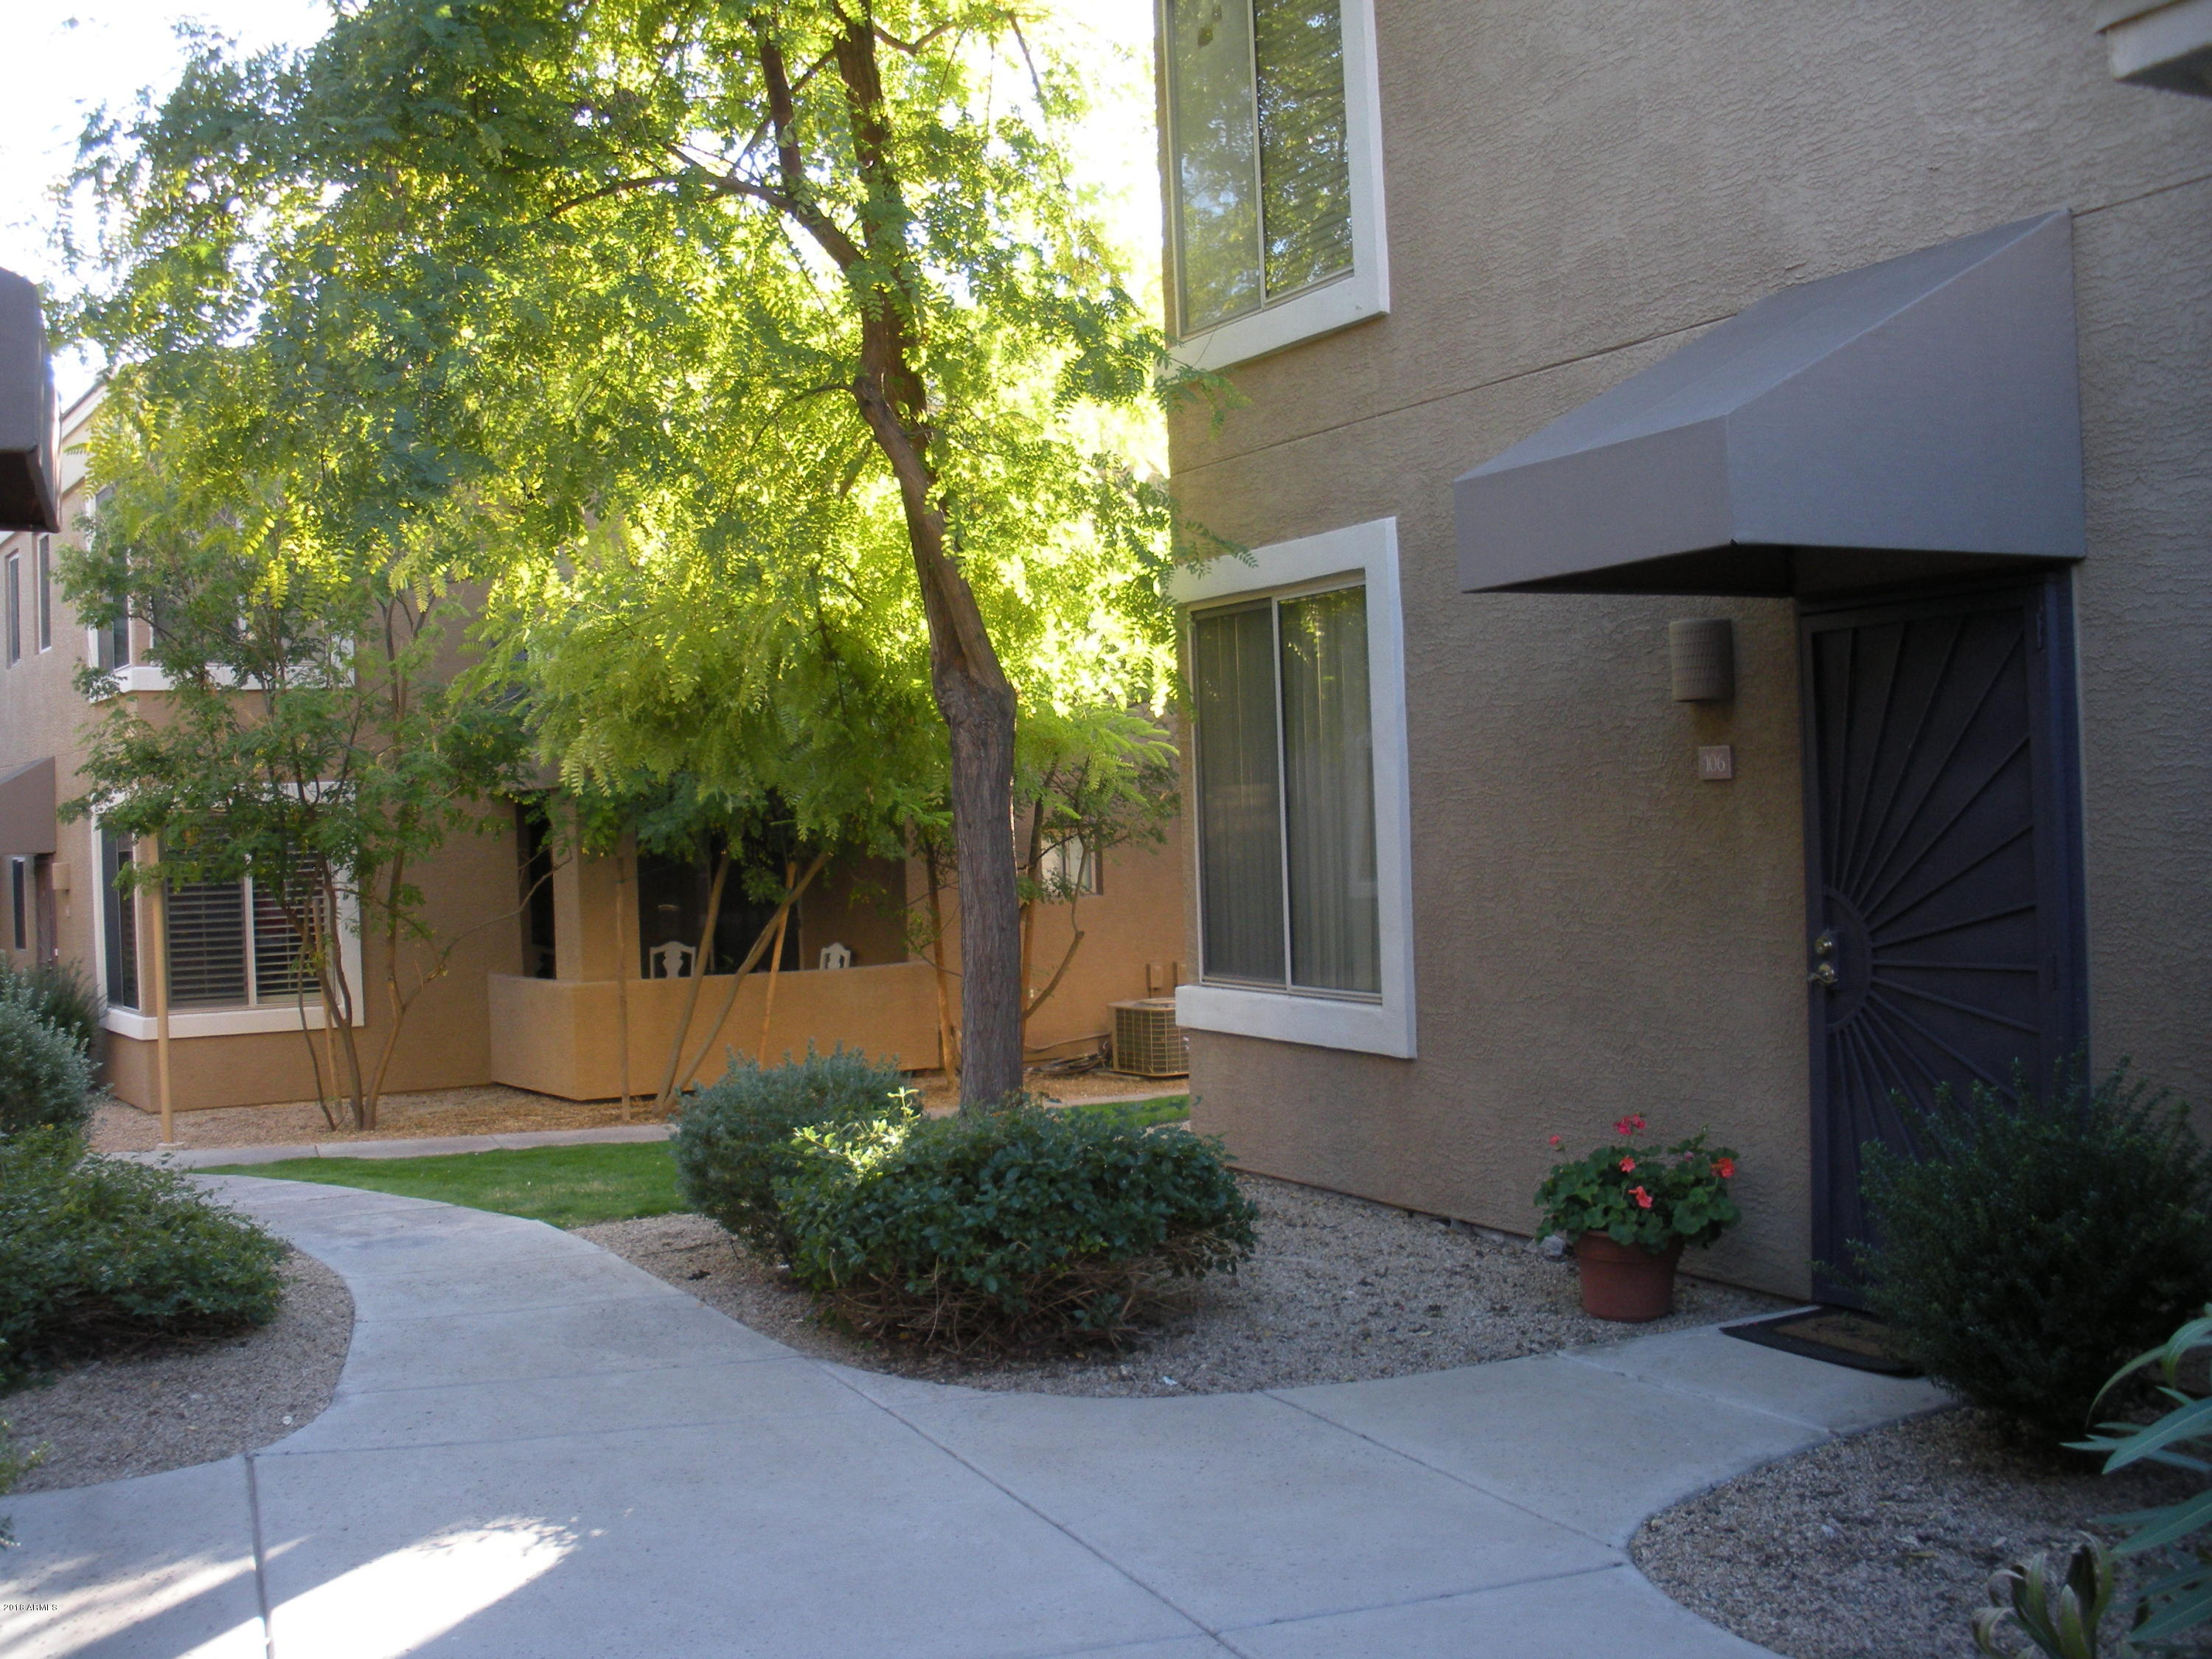 Photo of 1411 E ORANGEWOOD Avenue #207, Phoenix, AZ 85020